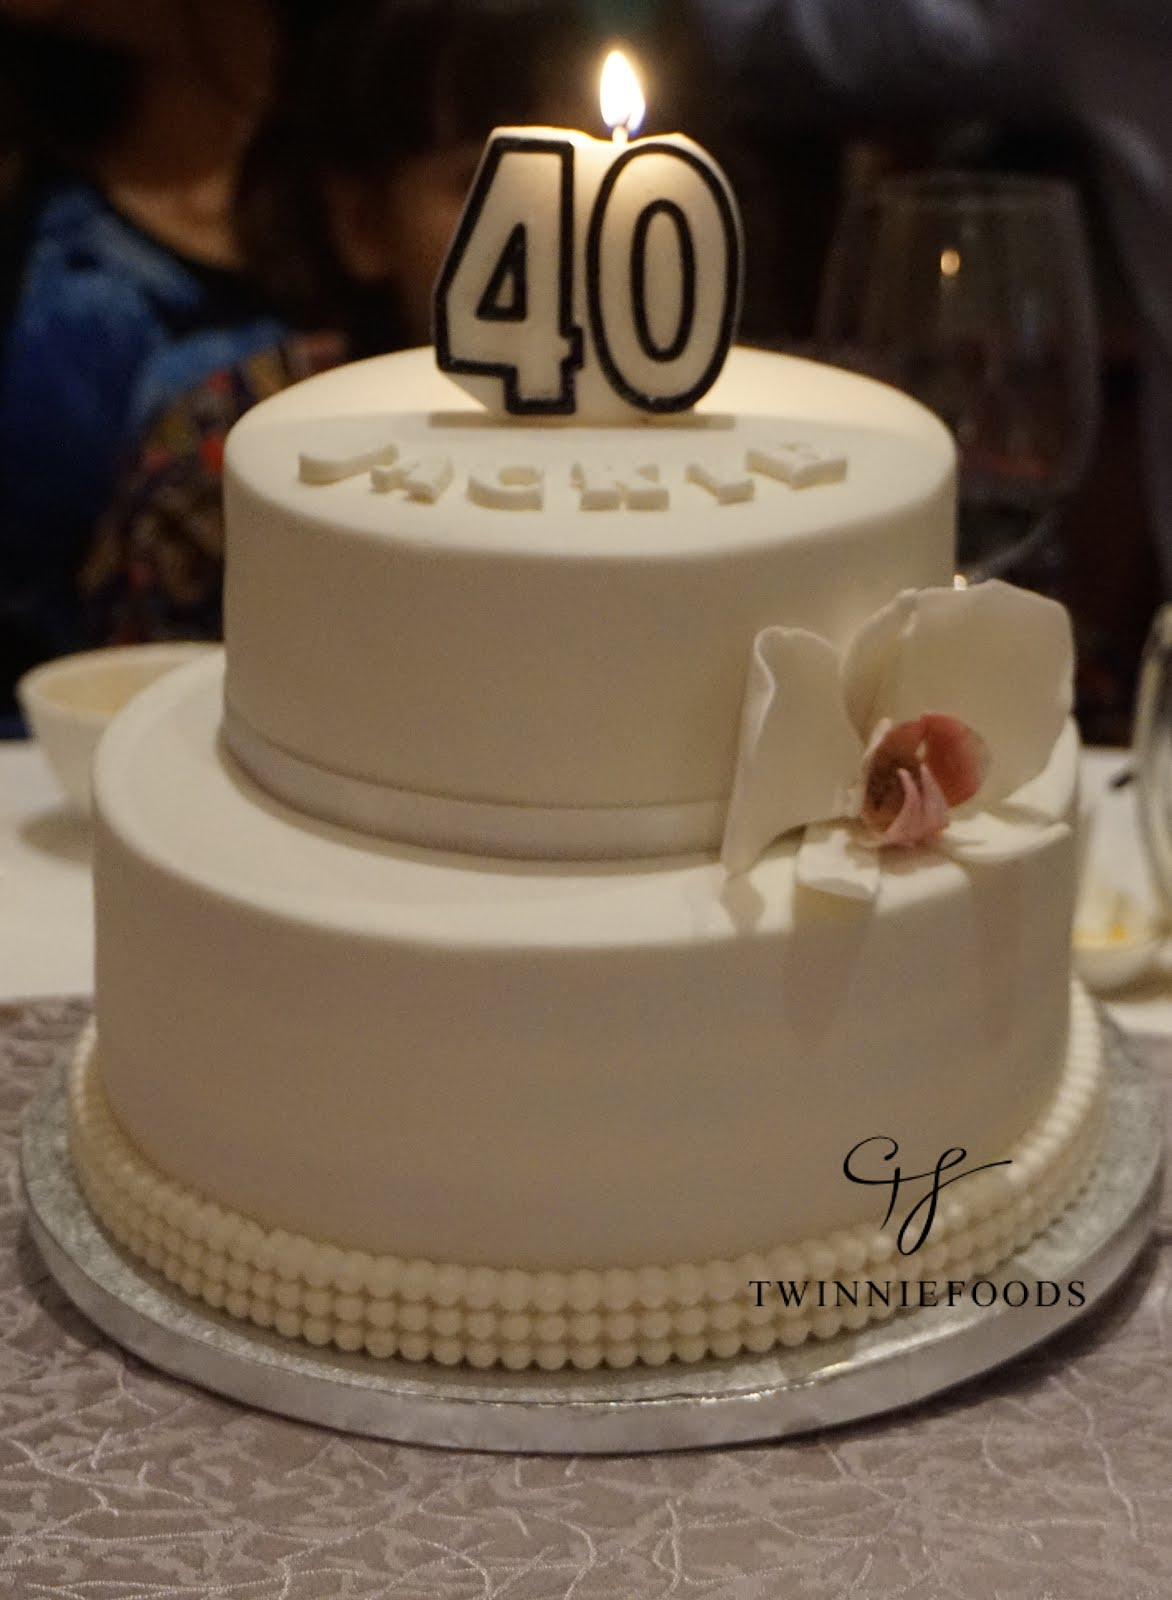 Elegant Cake Designs Birthday Cakes : Elegant 40th Birthday Cake - TwinnieFoods